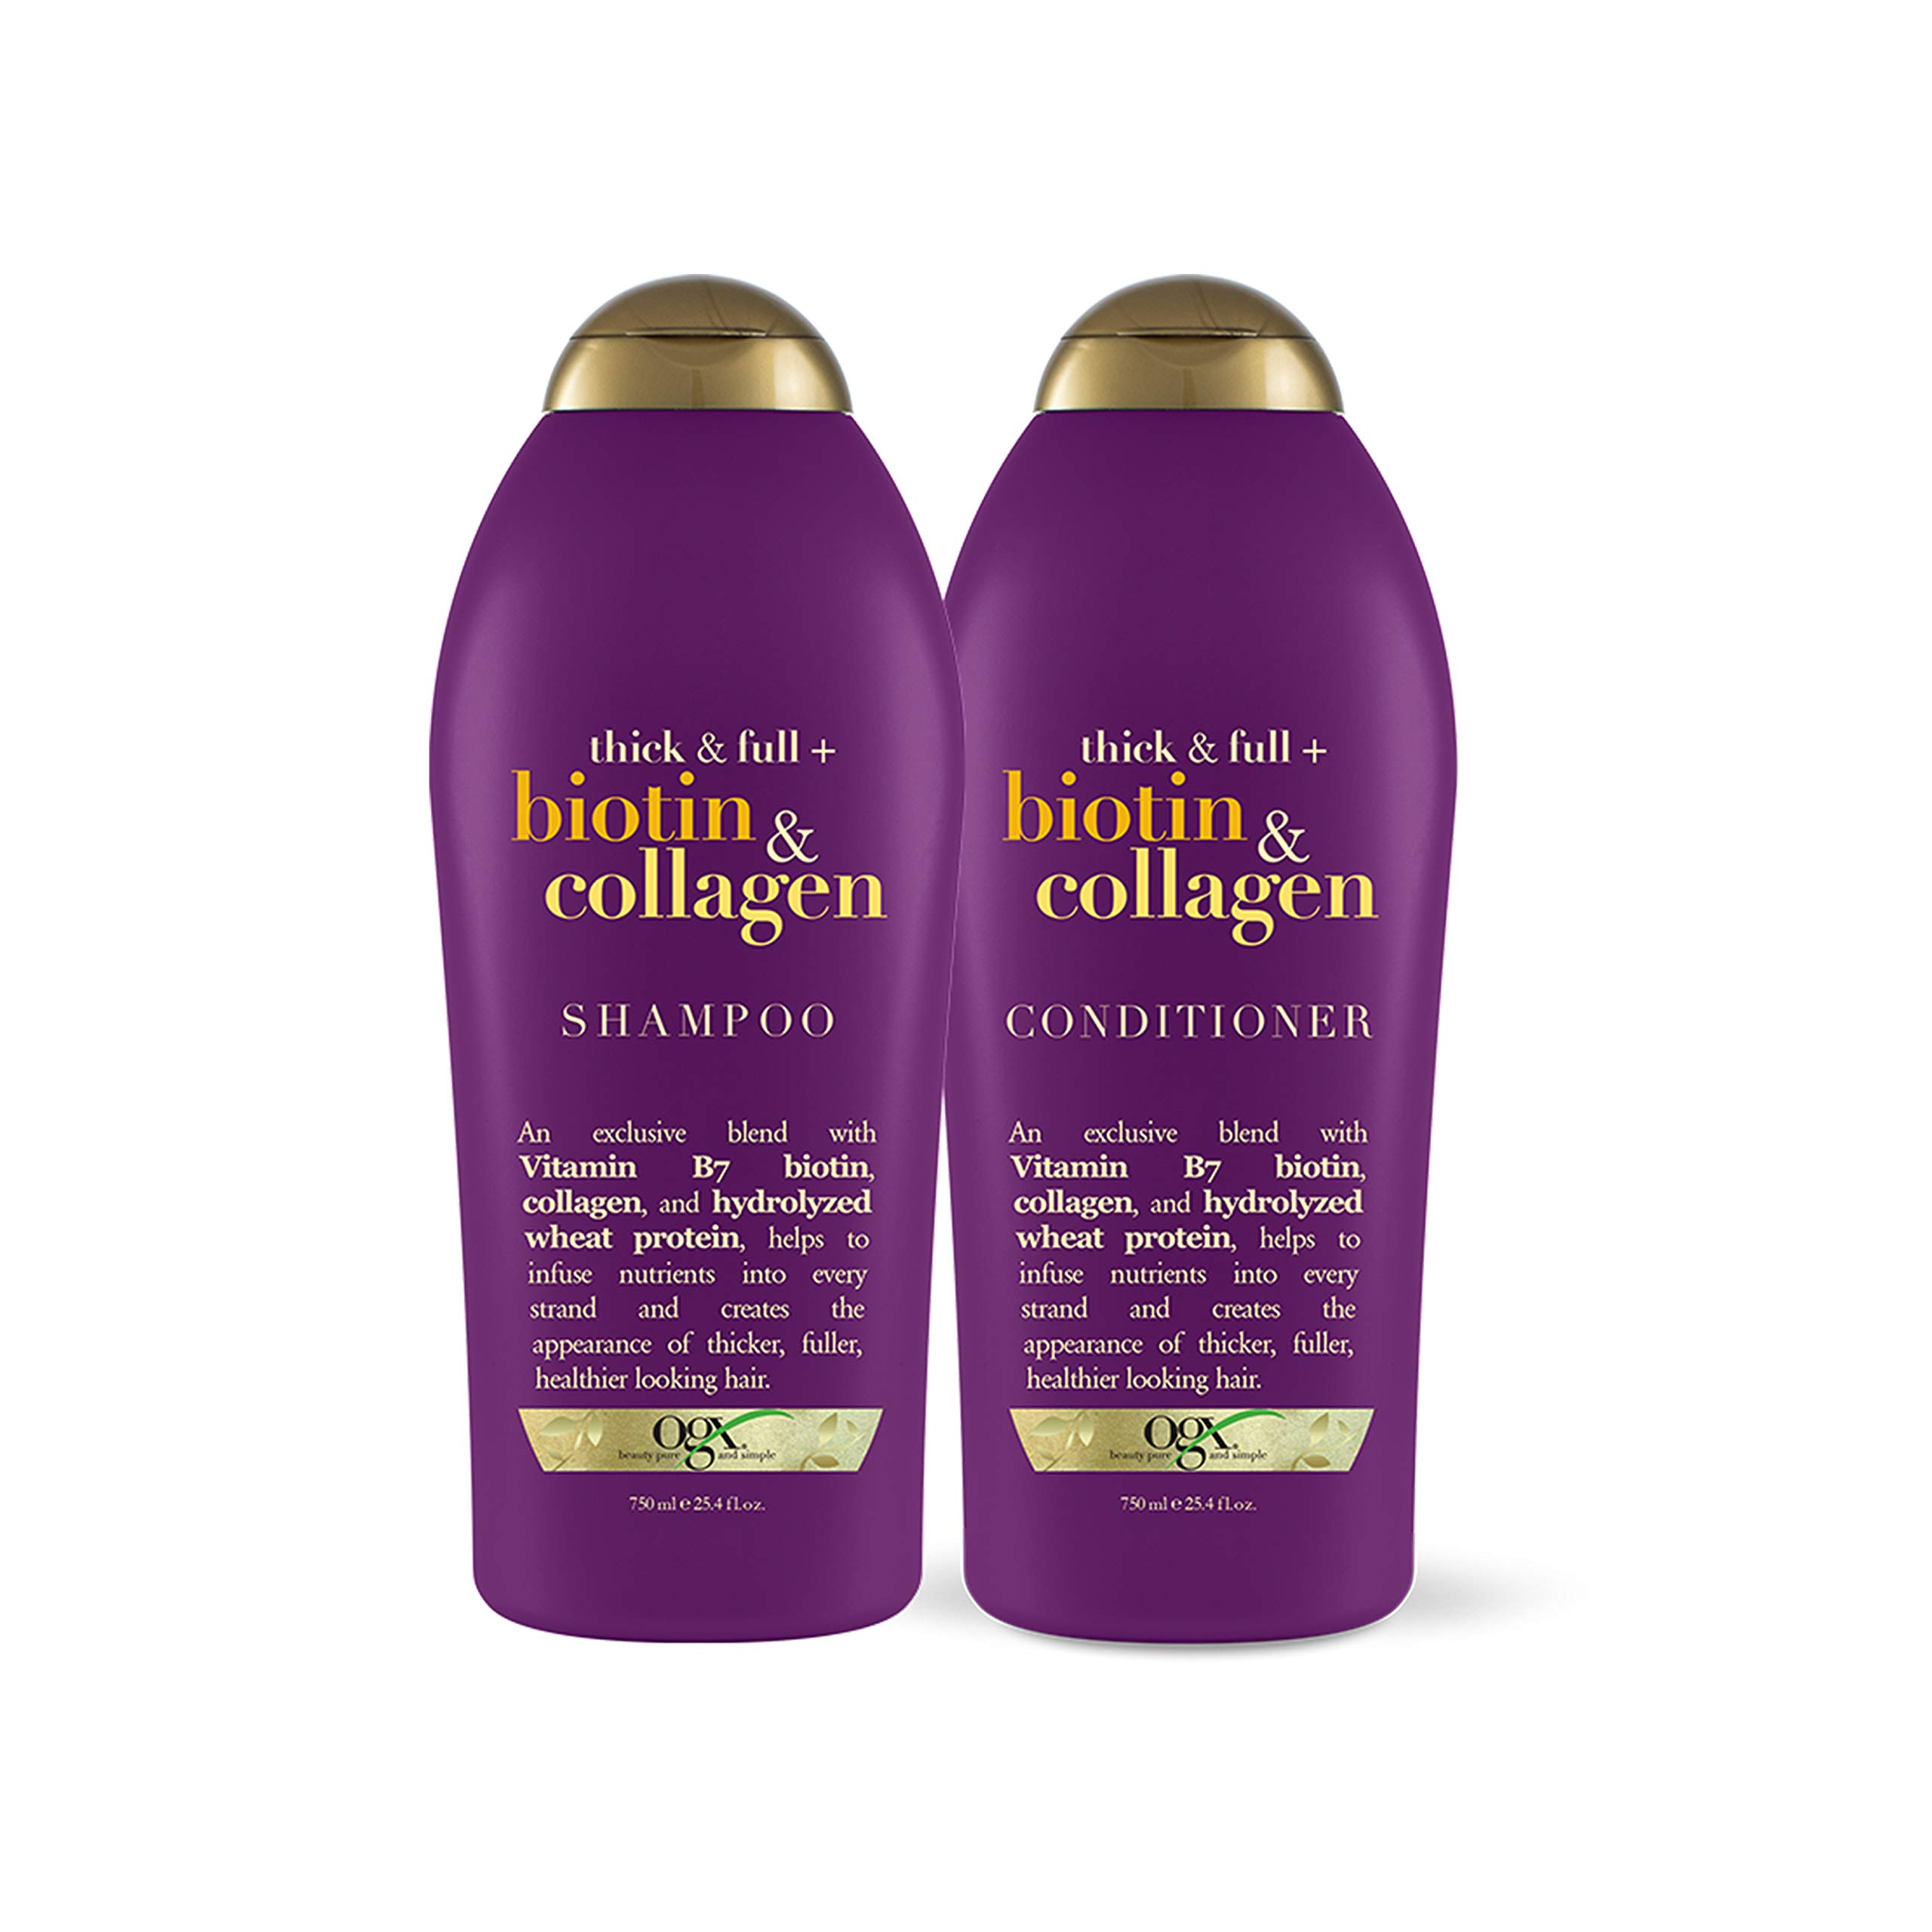 OGX Thick & Full + Biotin & Collagen Shampoo & Conditioner, 25.4 Ounce (Set of 2) by OGX